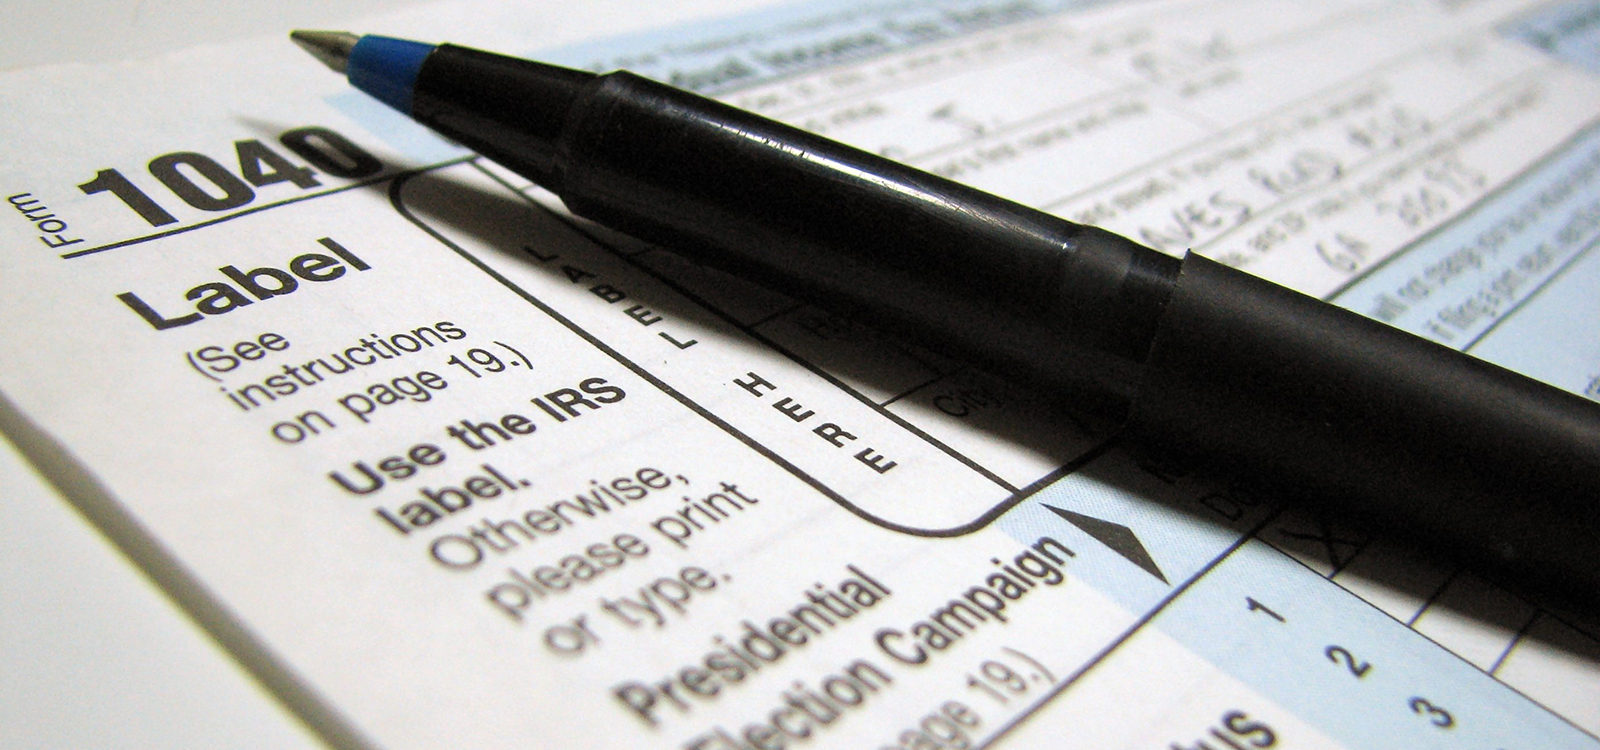 Tax preparation at RCs Financial Services